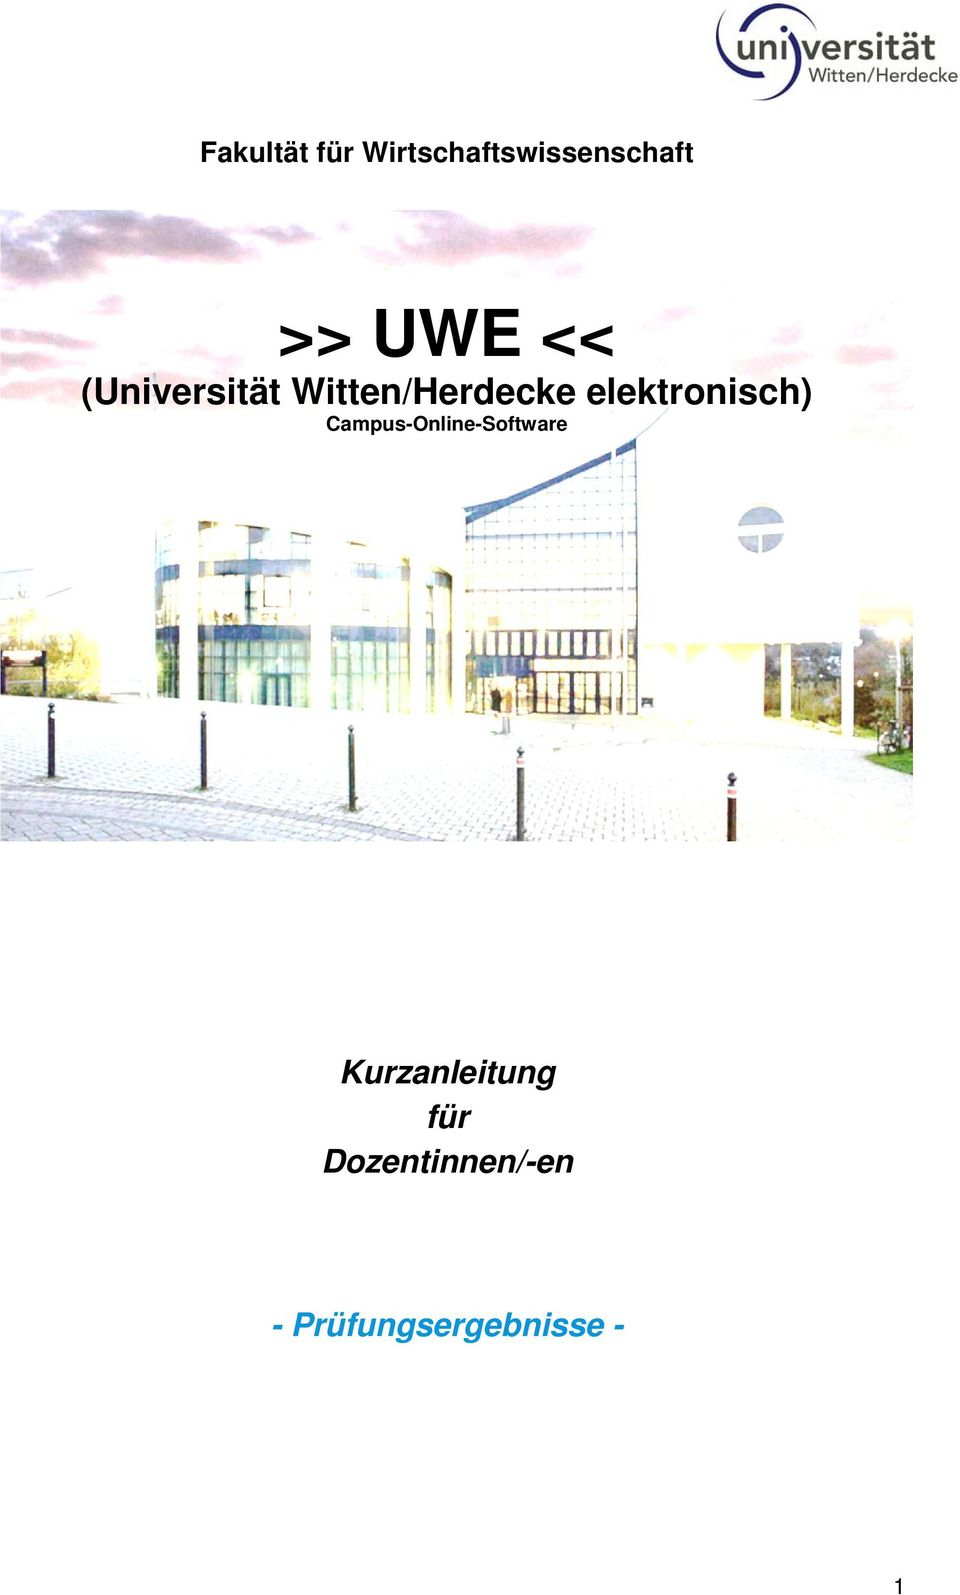 elektronisch) Campus-Online-Software